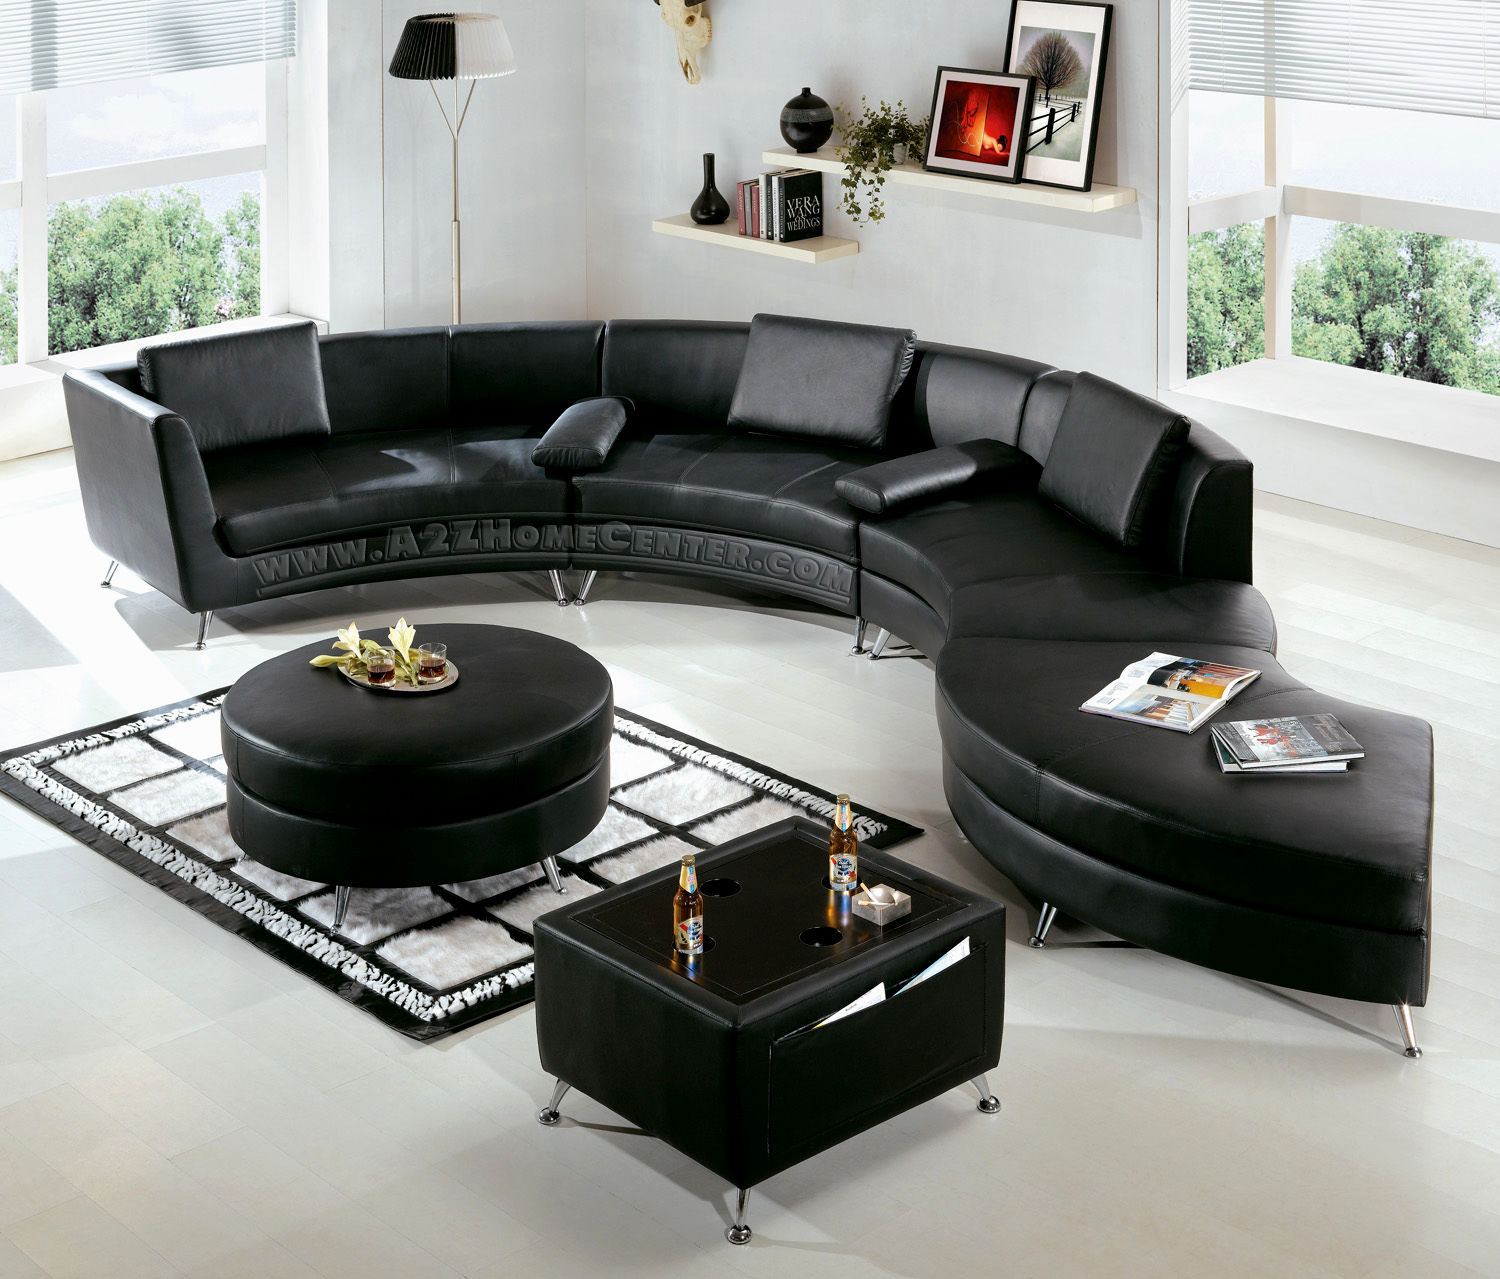 latest modern sectional sofas ideas-Beautiful Modern Sectional sofas Wallpaper